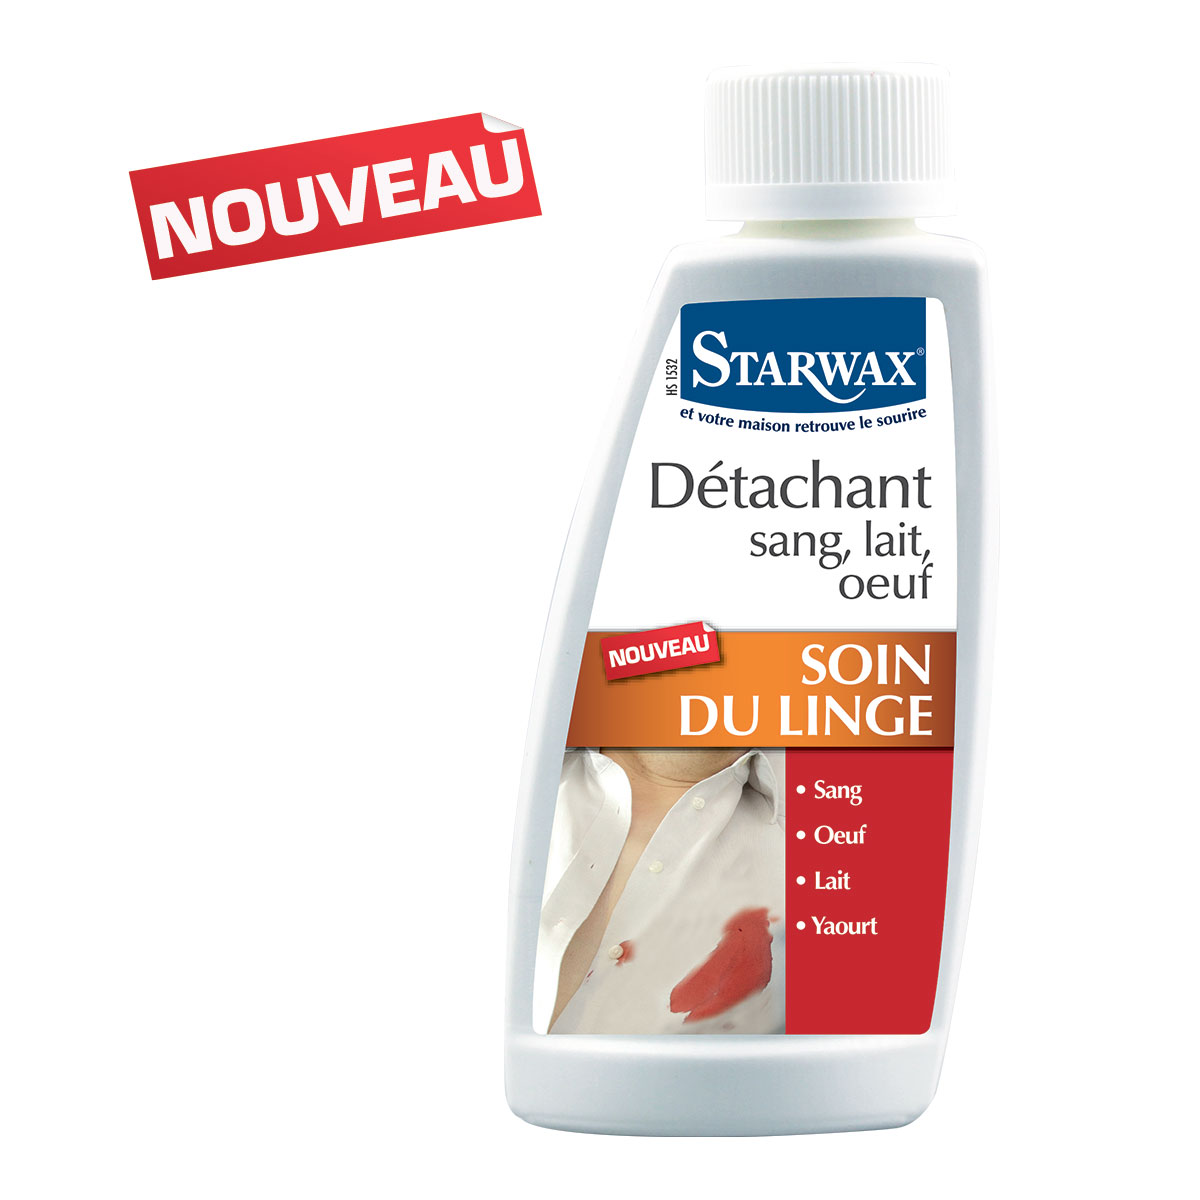 Detachant sang lait oeuf